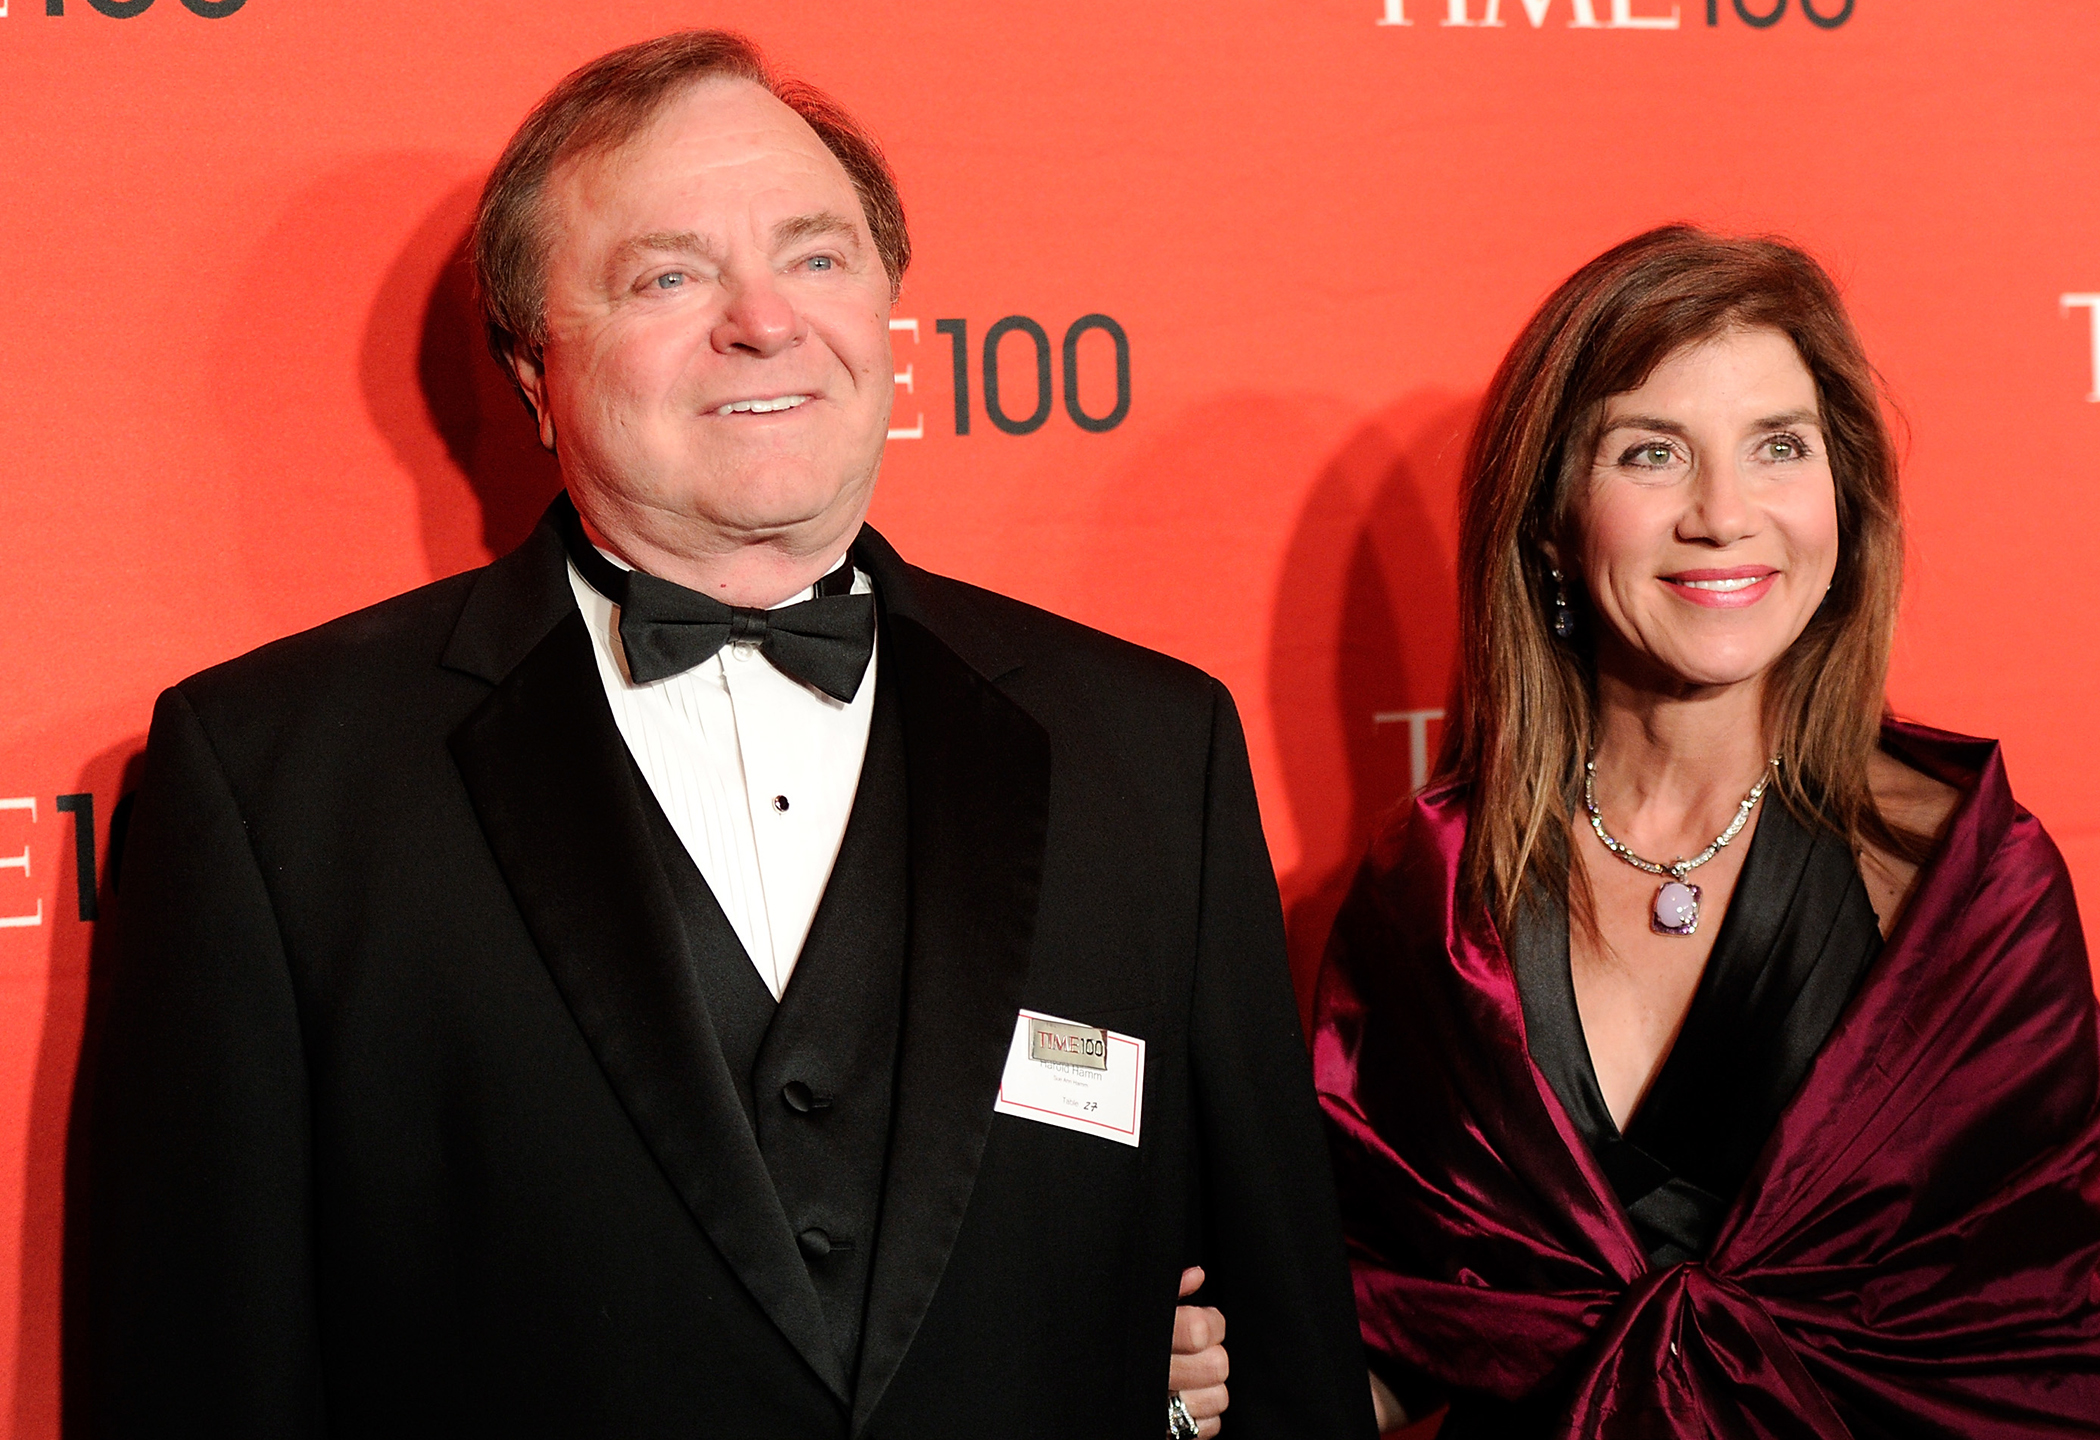 CEO Harold Hamm and his then wife Sue Ann Hamm